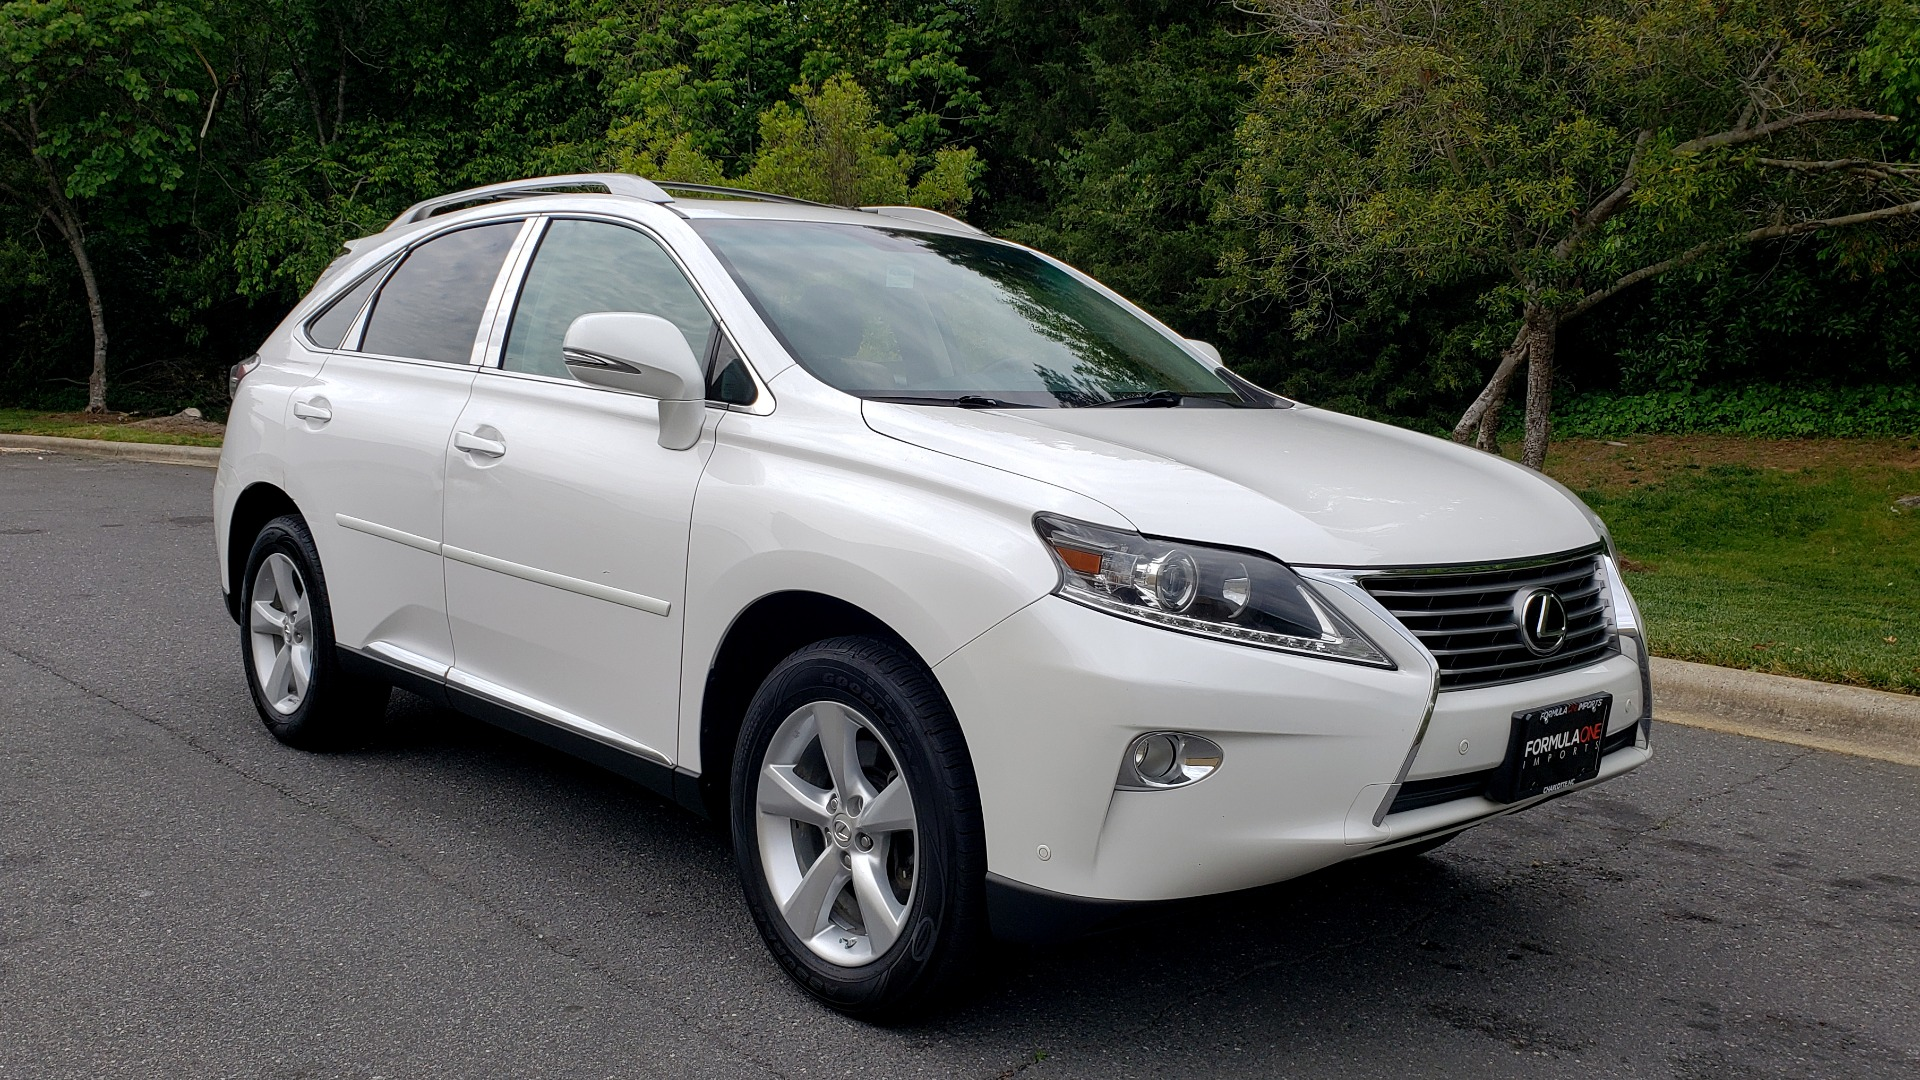 Used 2013 Lexus RX 350 PREMIUM PKG / SUNROOF / BSM / PARK ASST / REARVIEW for sale Sold at Formula Imports in Charlotte NC 28227 4